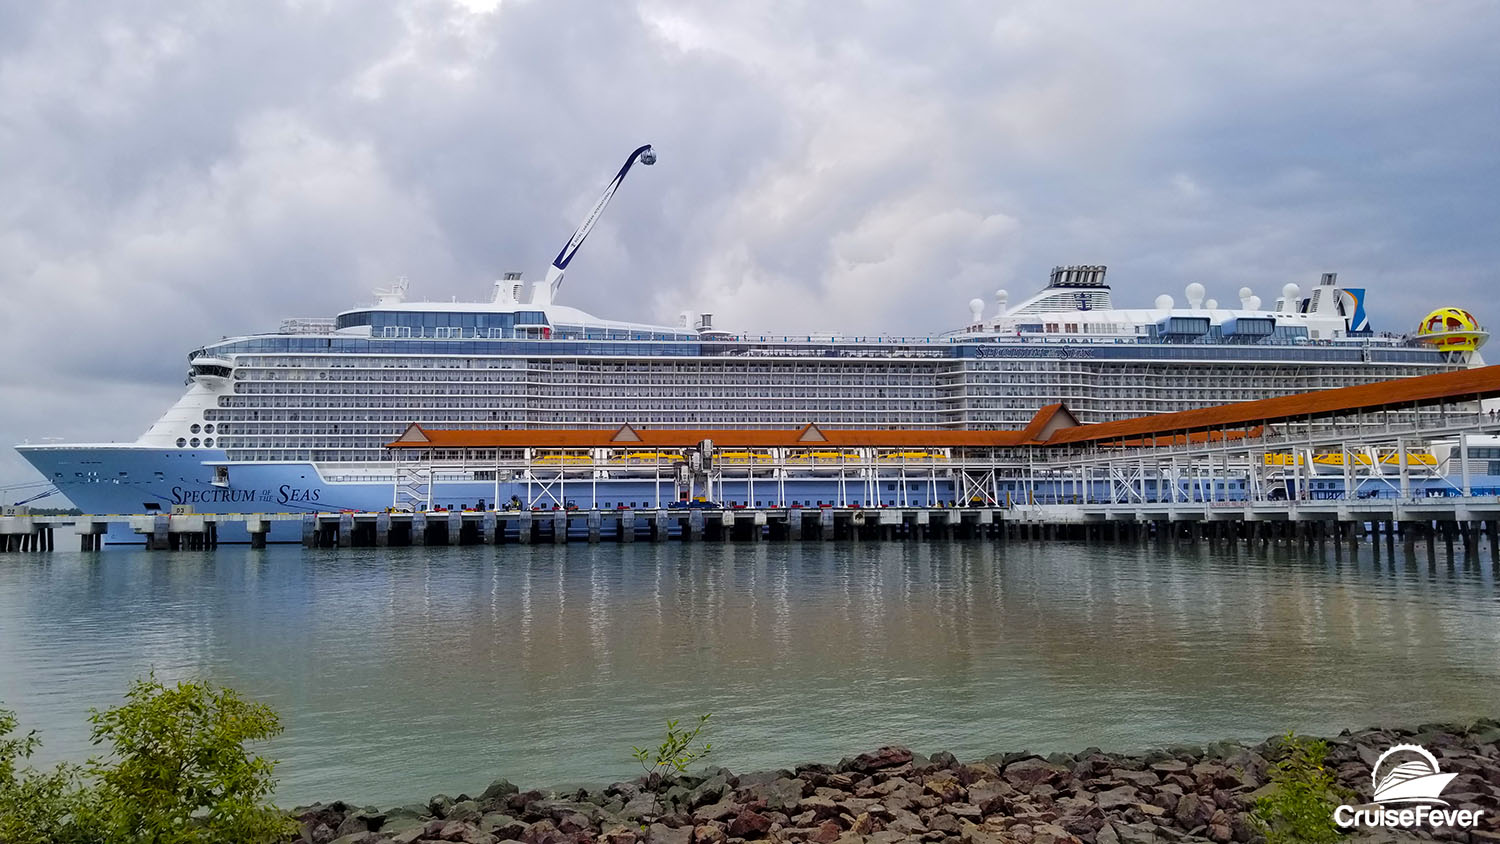 First Impressions of Royal Caribbean's Newest Cruise Ship, Spectrum of the Seas